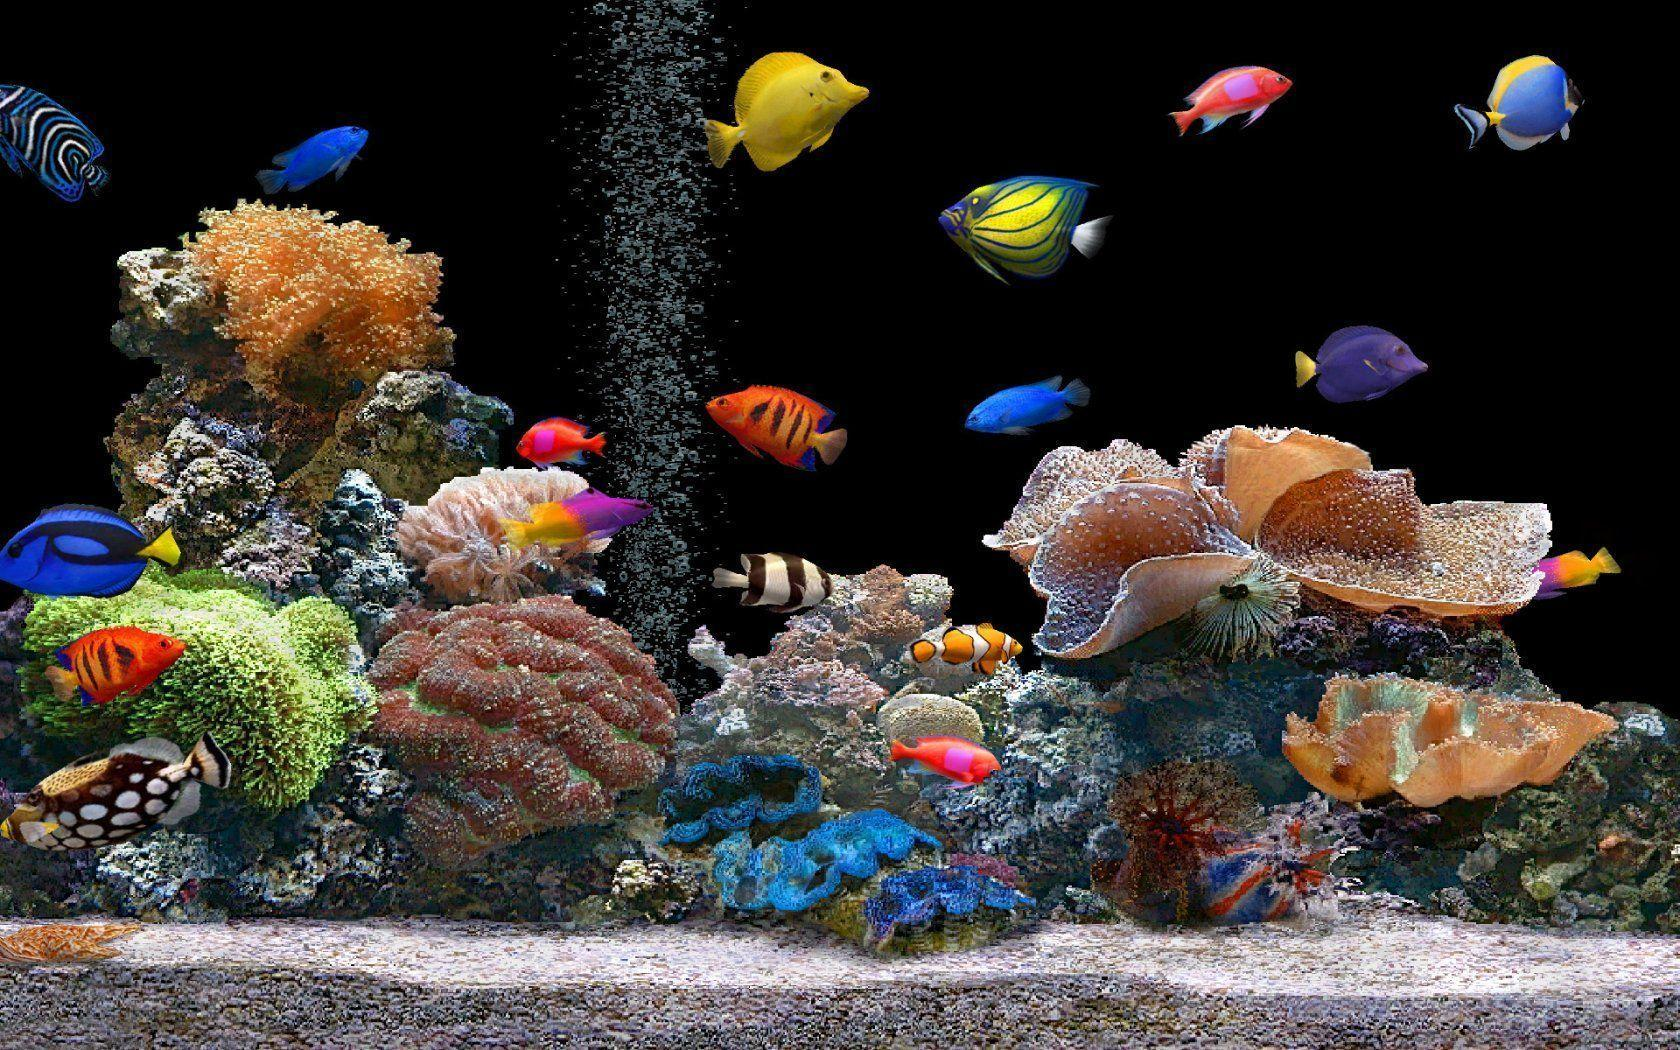 aquarium hd wallpaper - photo #11